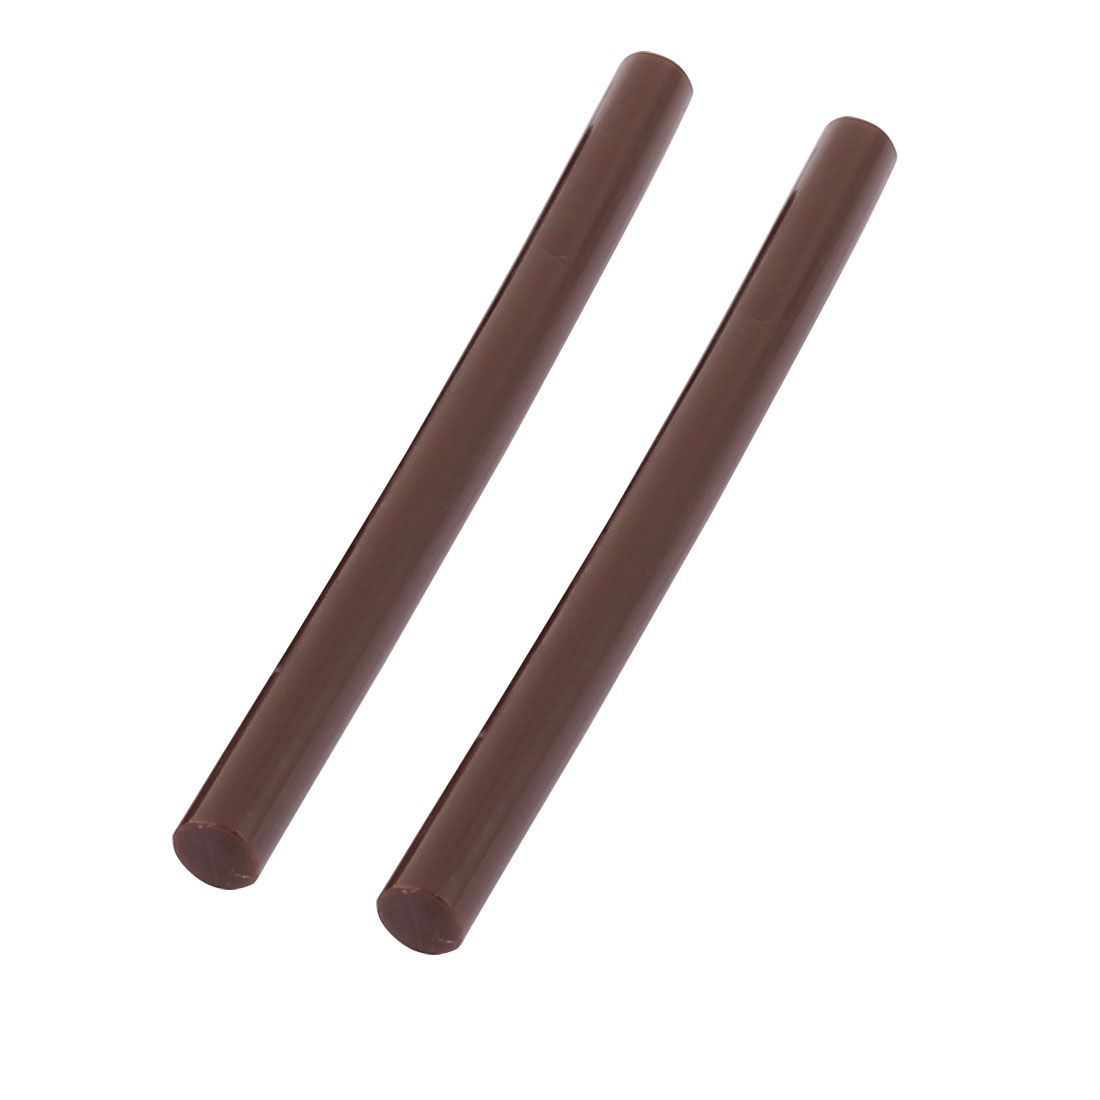 2pcs Mini Brown Adhesive Hot Melt Glue Sticks 7mm x 100mm For Hot Melt Glue Gun